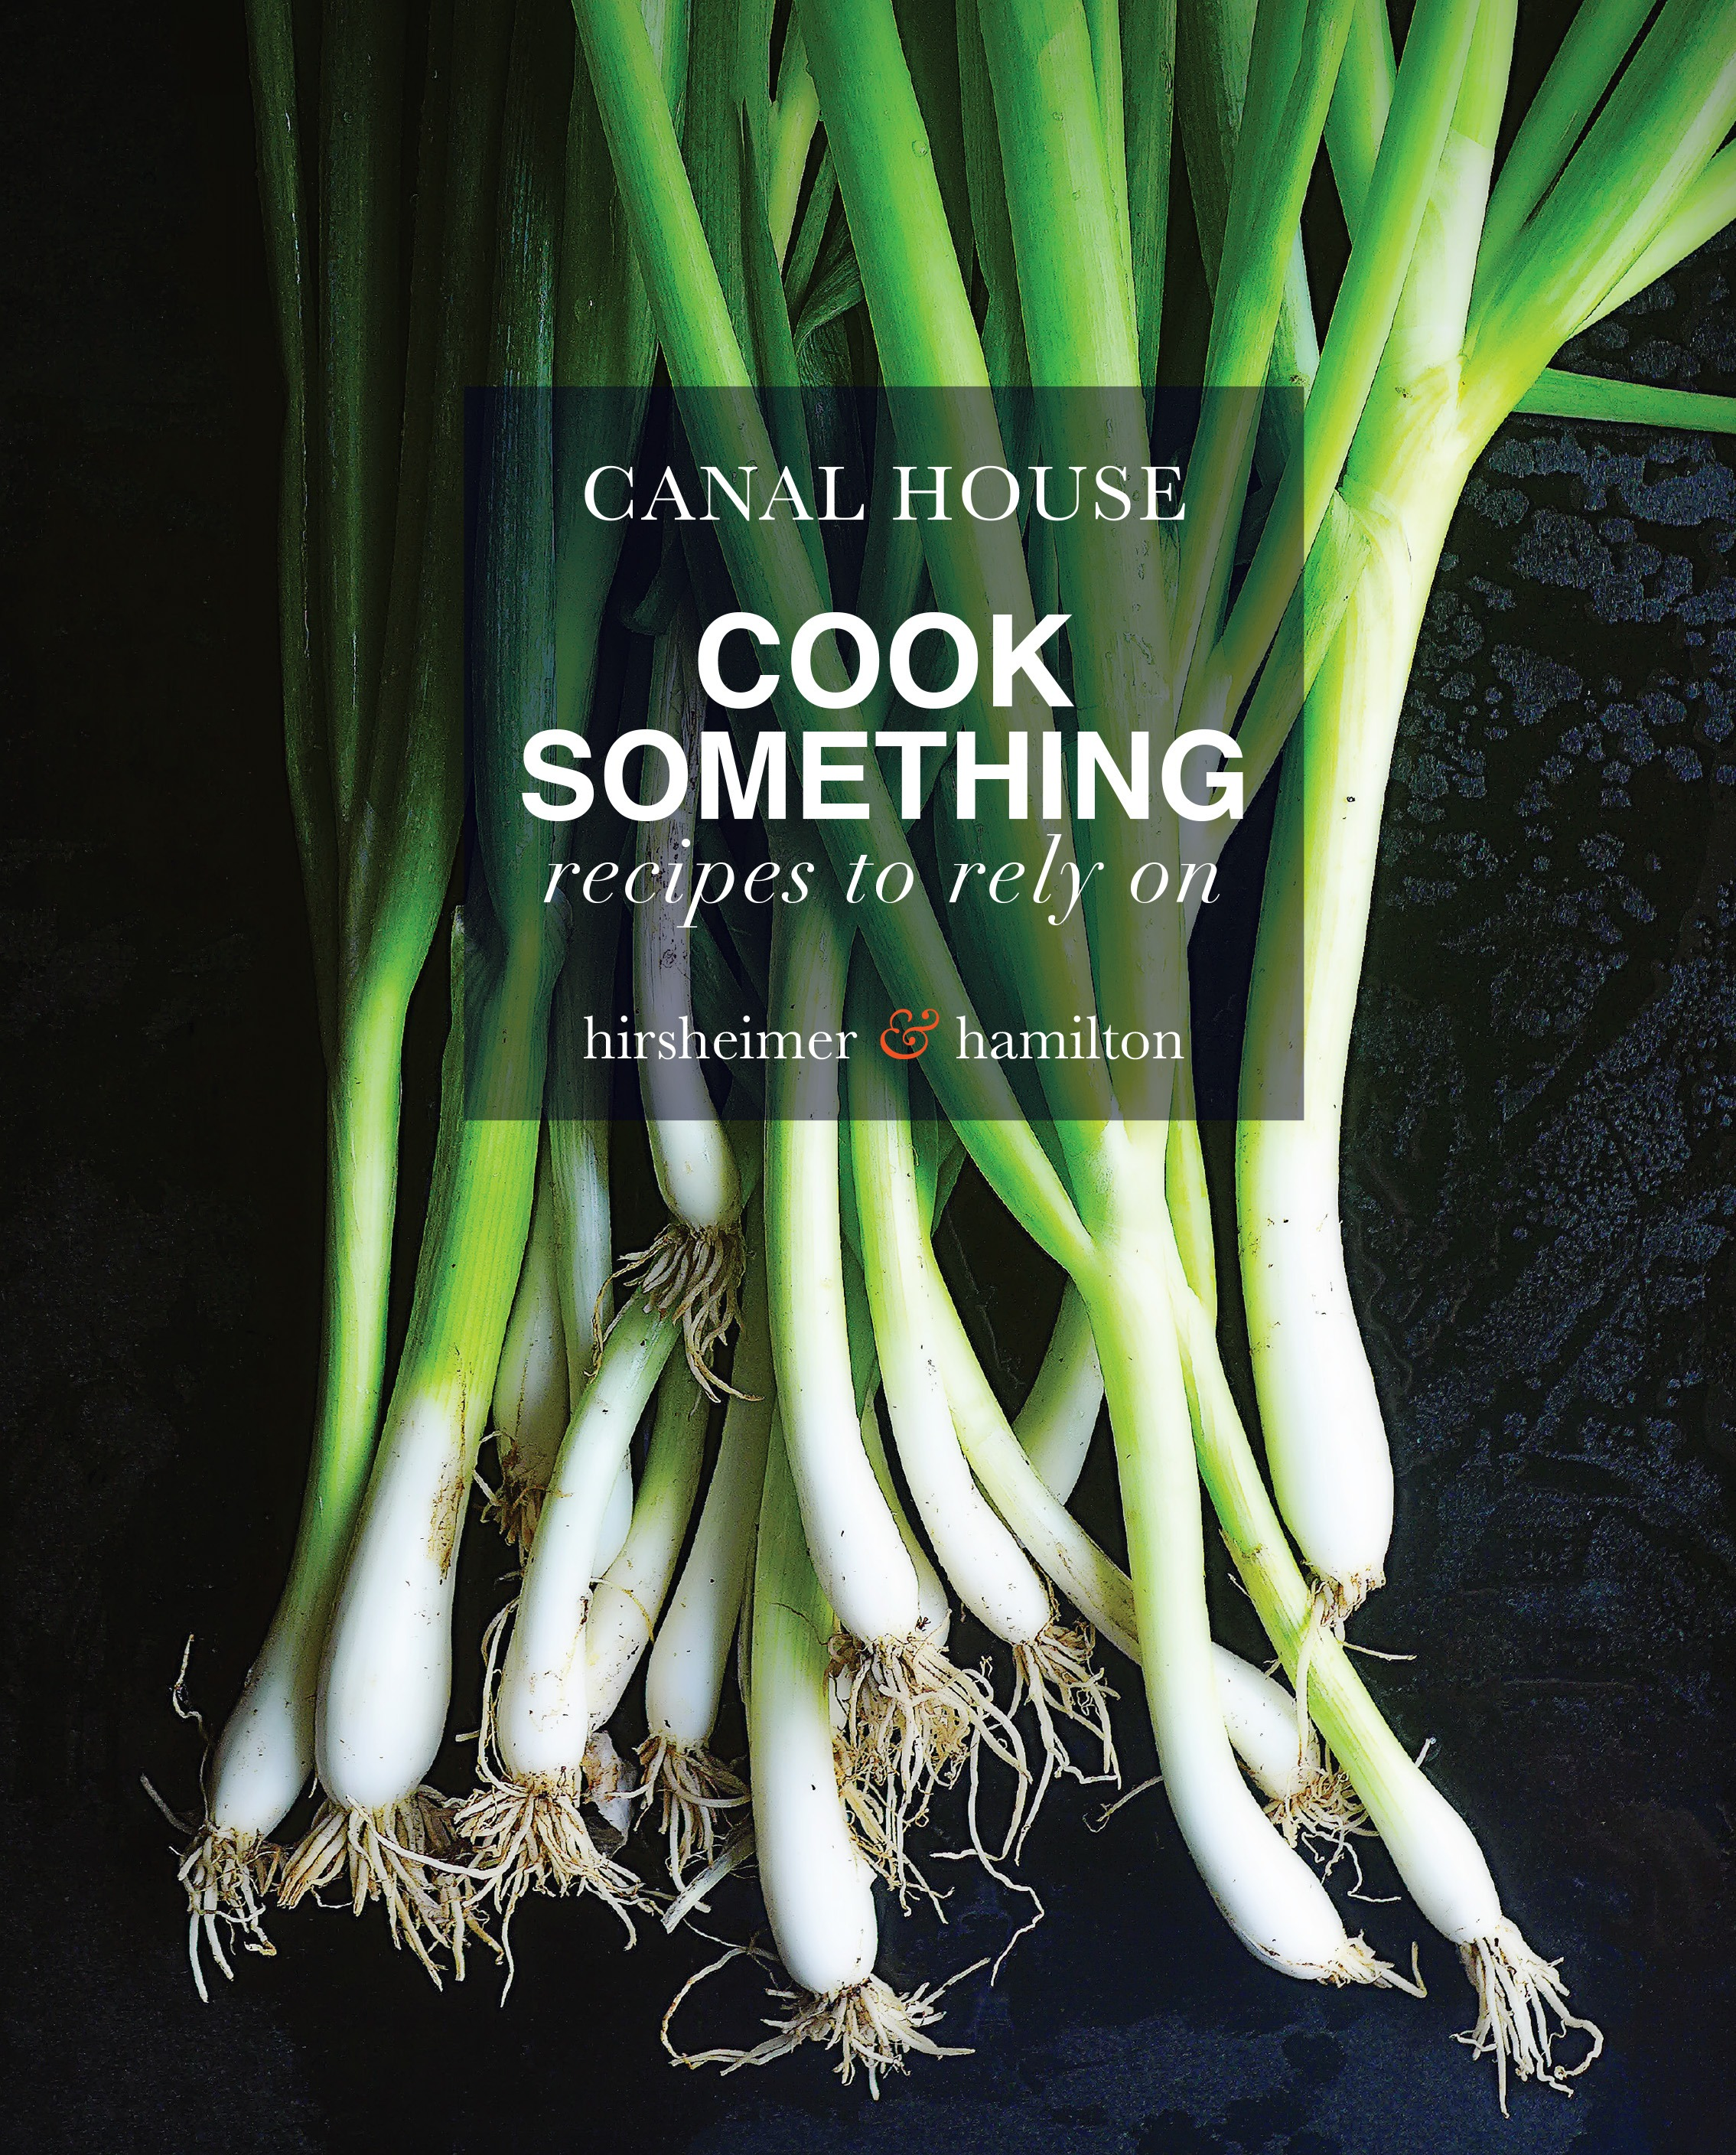 A book cover featuring a photograph of green onions.